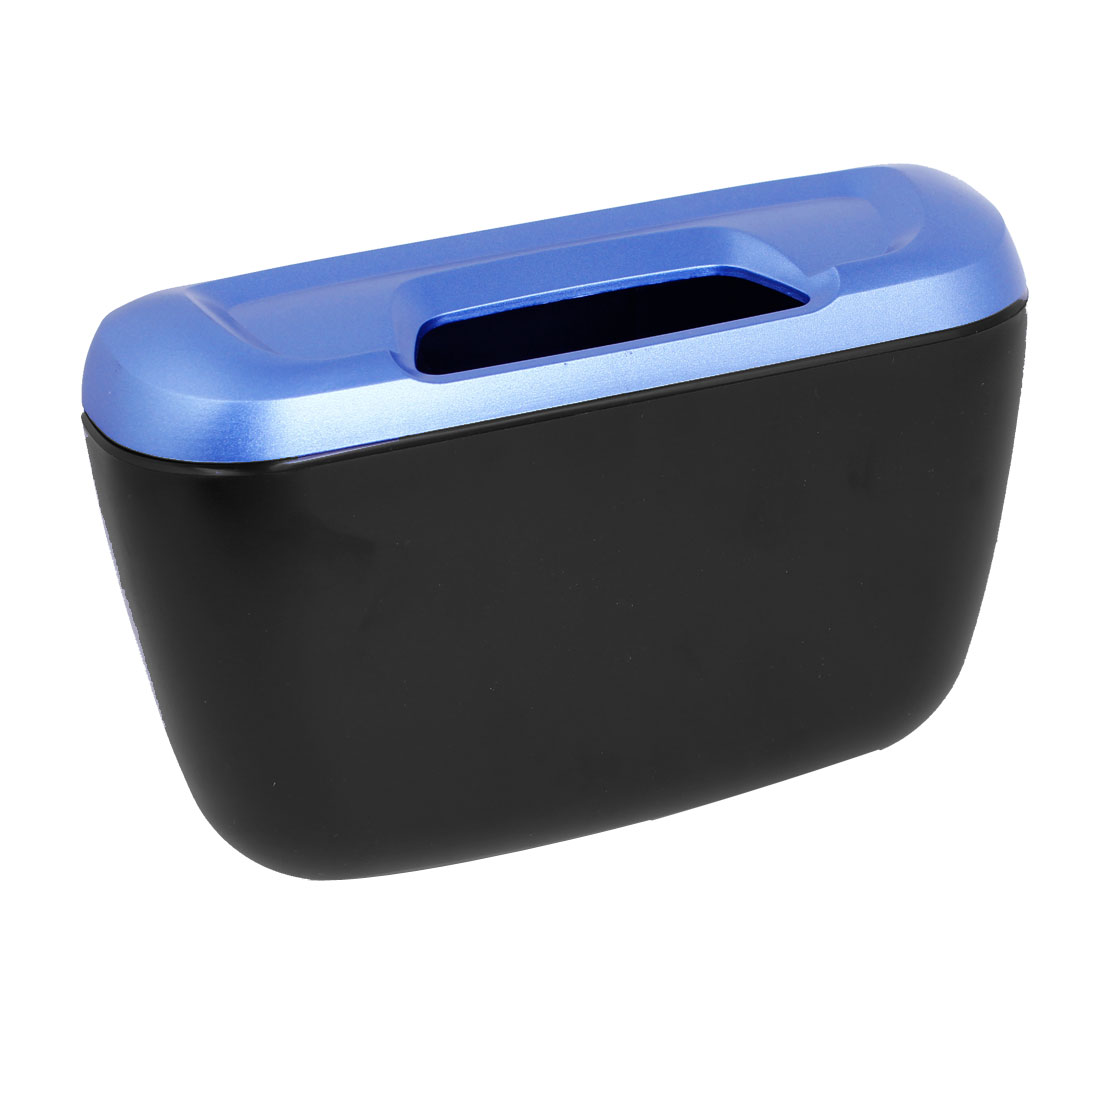 Vehicle Car Black Blue Plastic Trash Bin Garbage Container Box w Hook